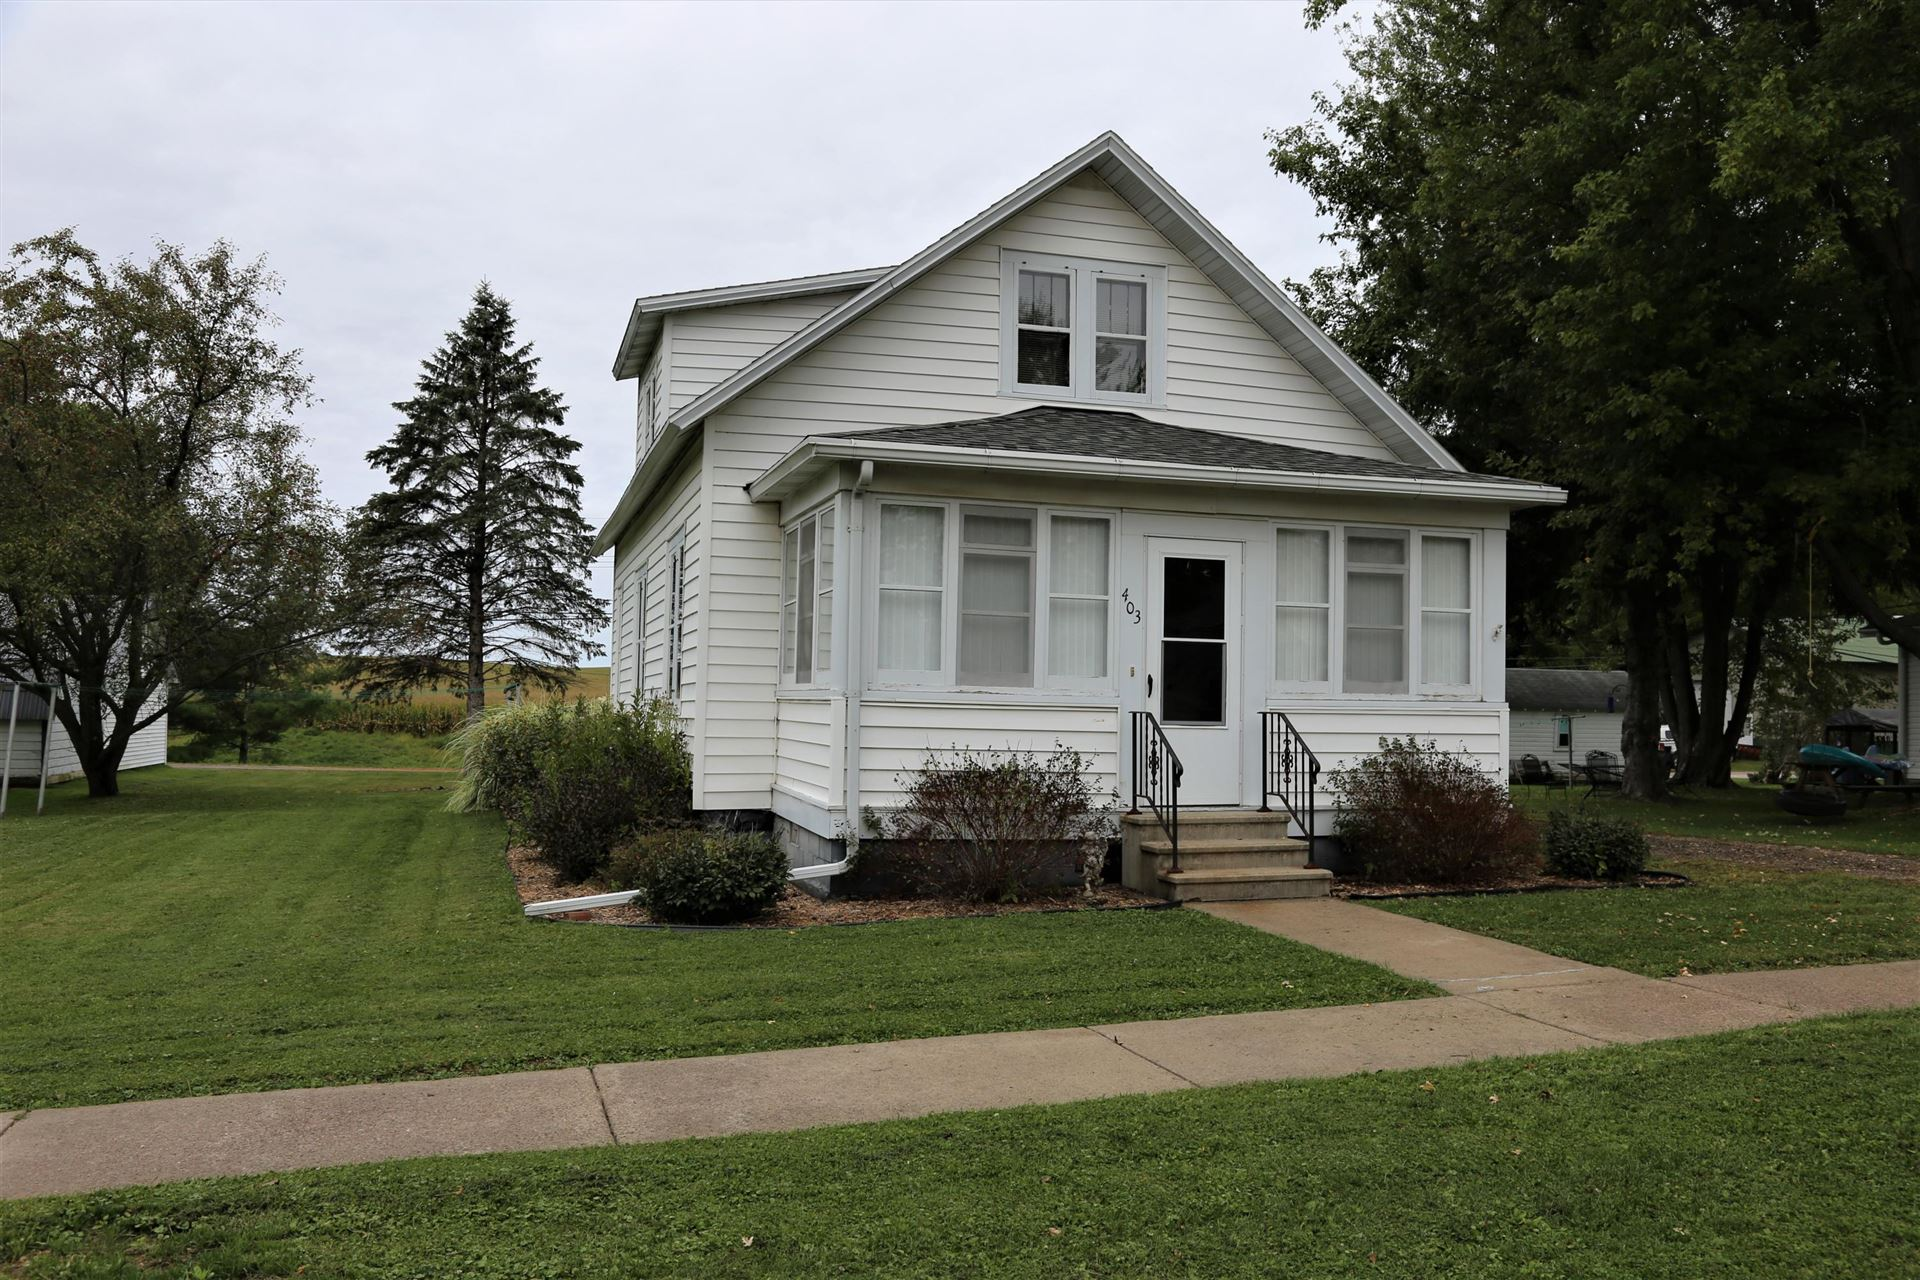 403 2nd St, Melrose, WI 54642 - MLS#: 1709438